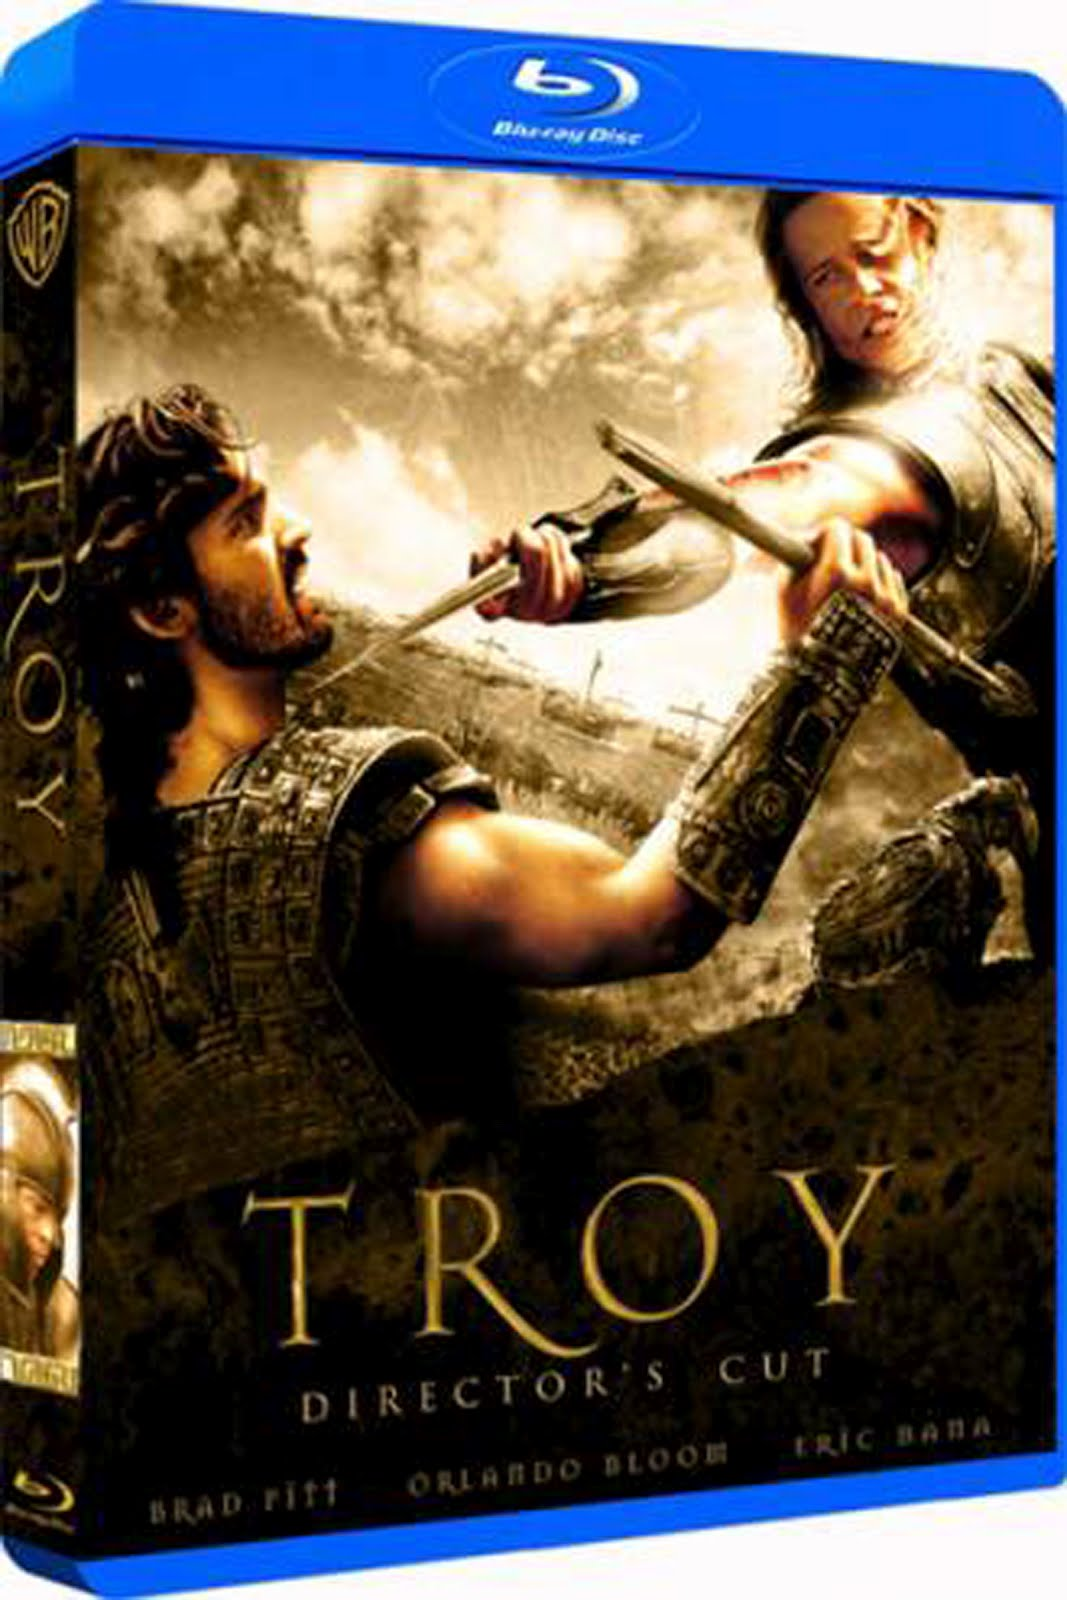 Troy Director's Cut Blu-ray Case